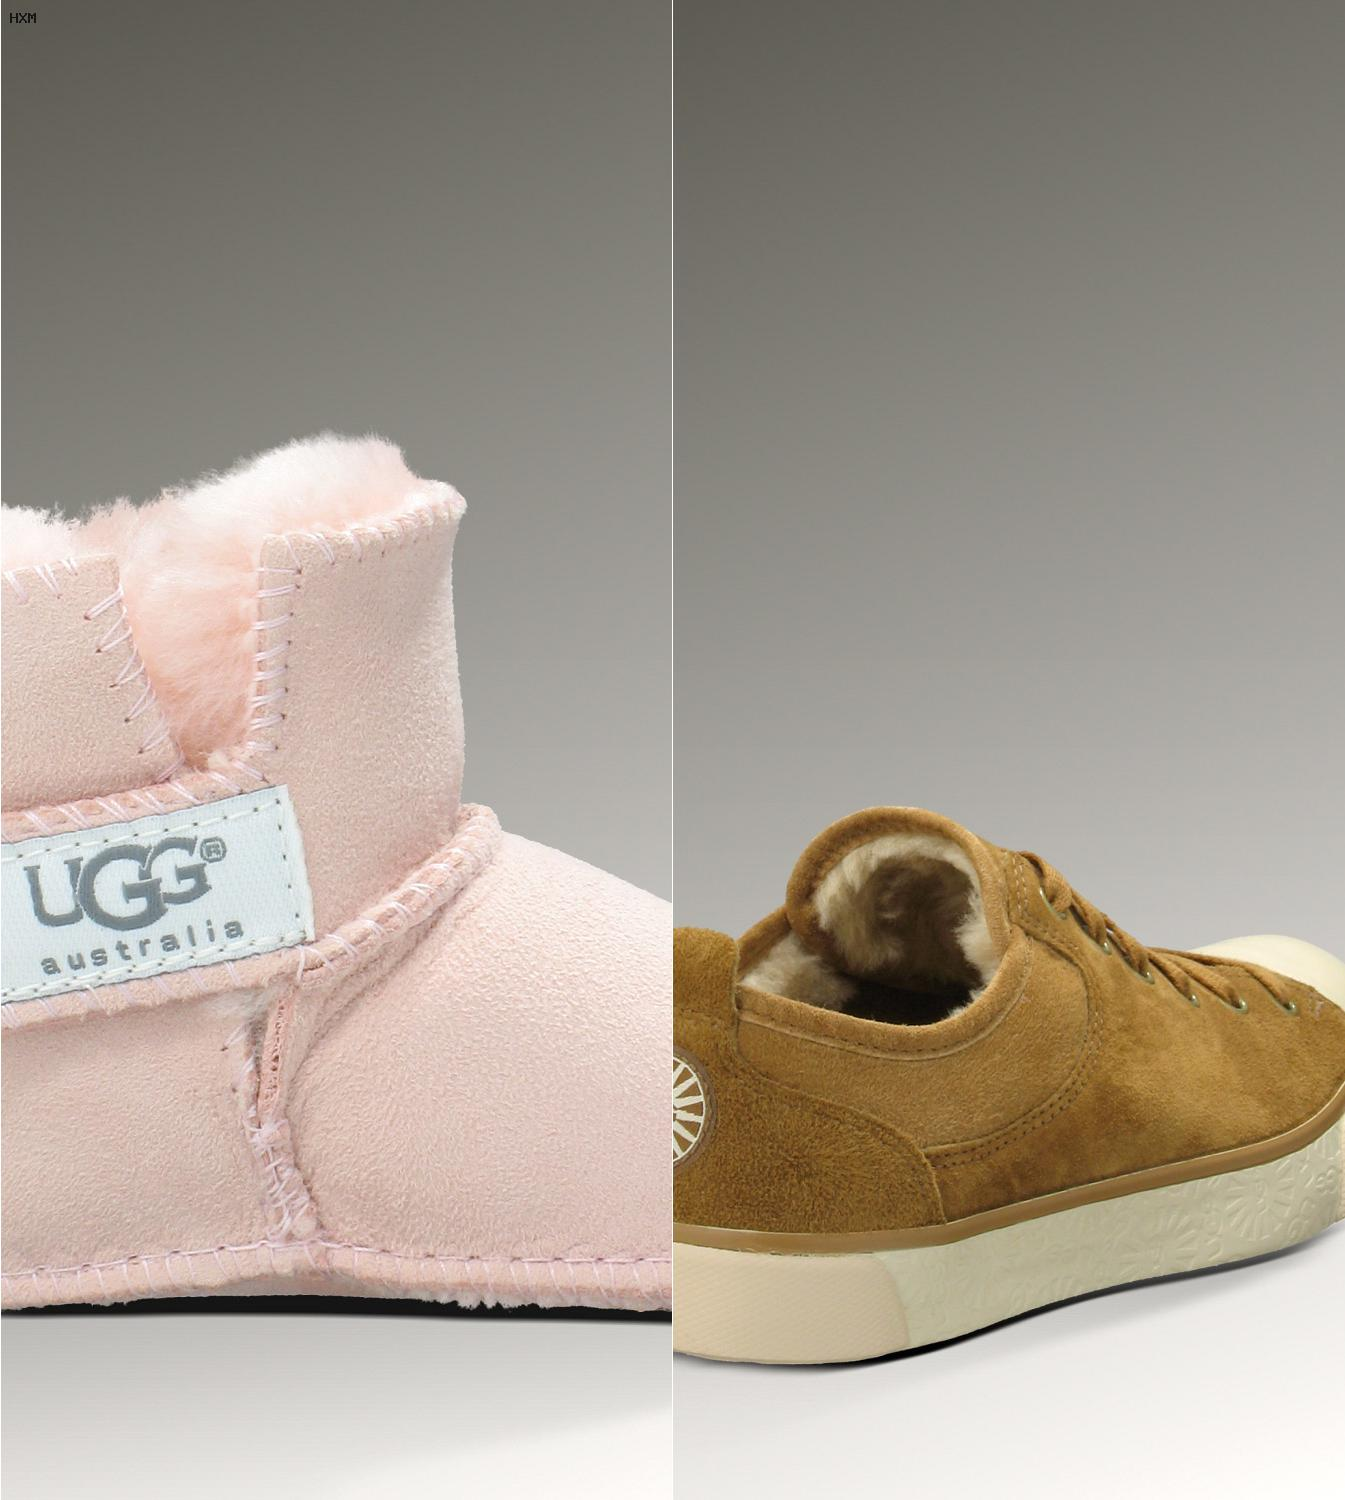 chaussons ugg 35